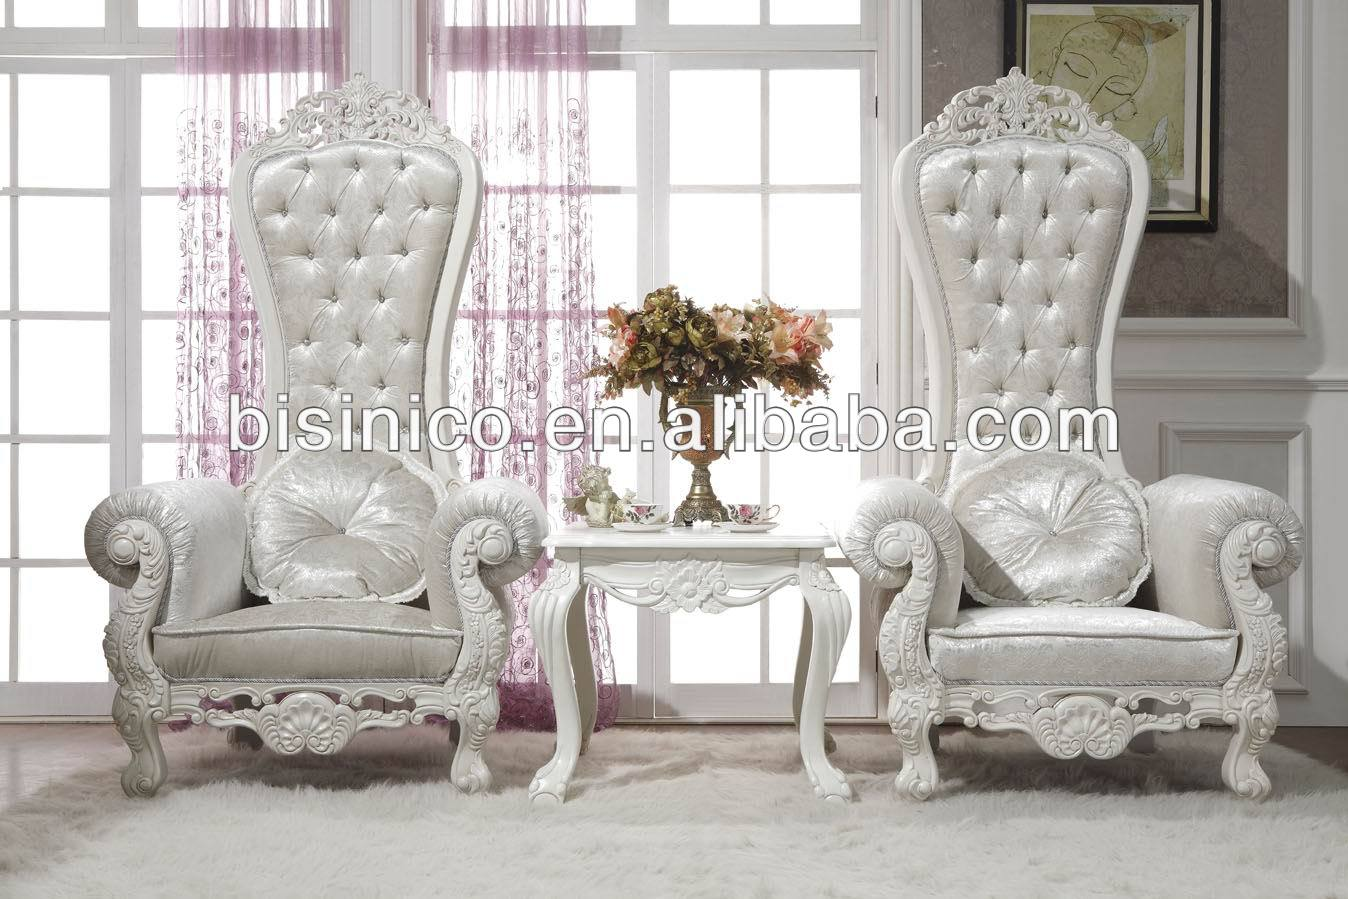 luxury living room furniture elegant royal queen chairs set buy queen anne living room. Black Bedroom Furniture Sets. Home Design Ideas